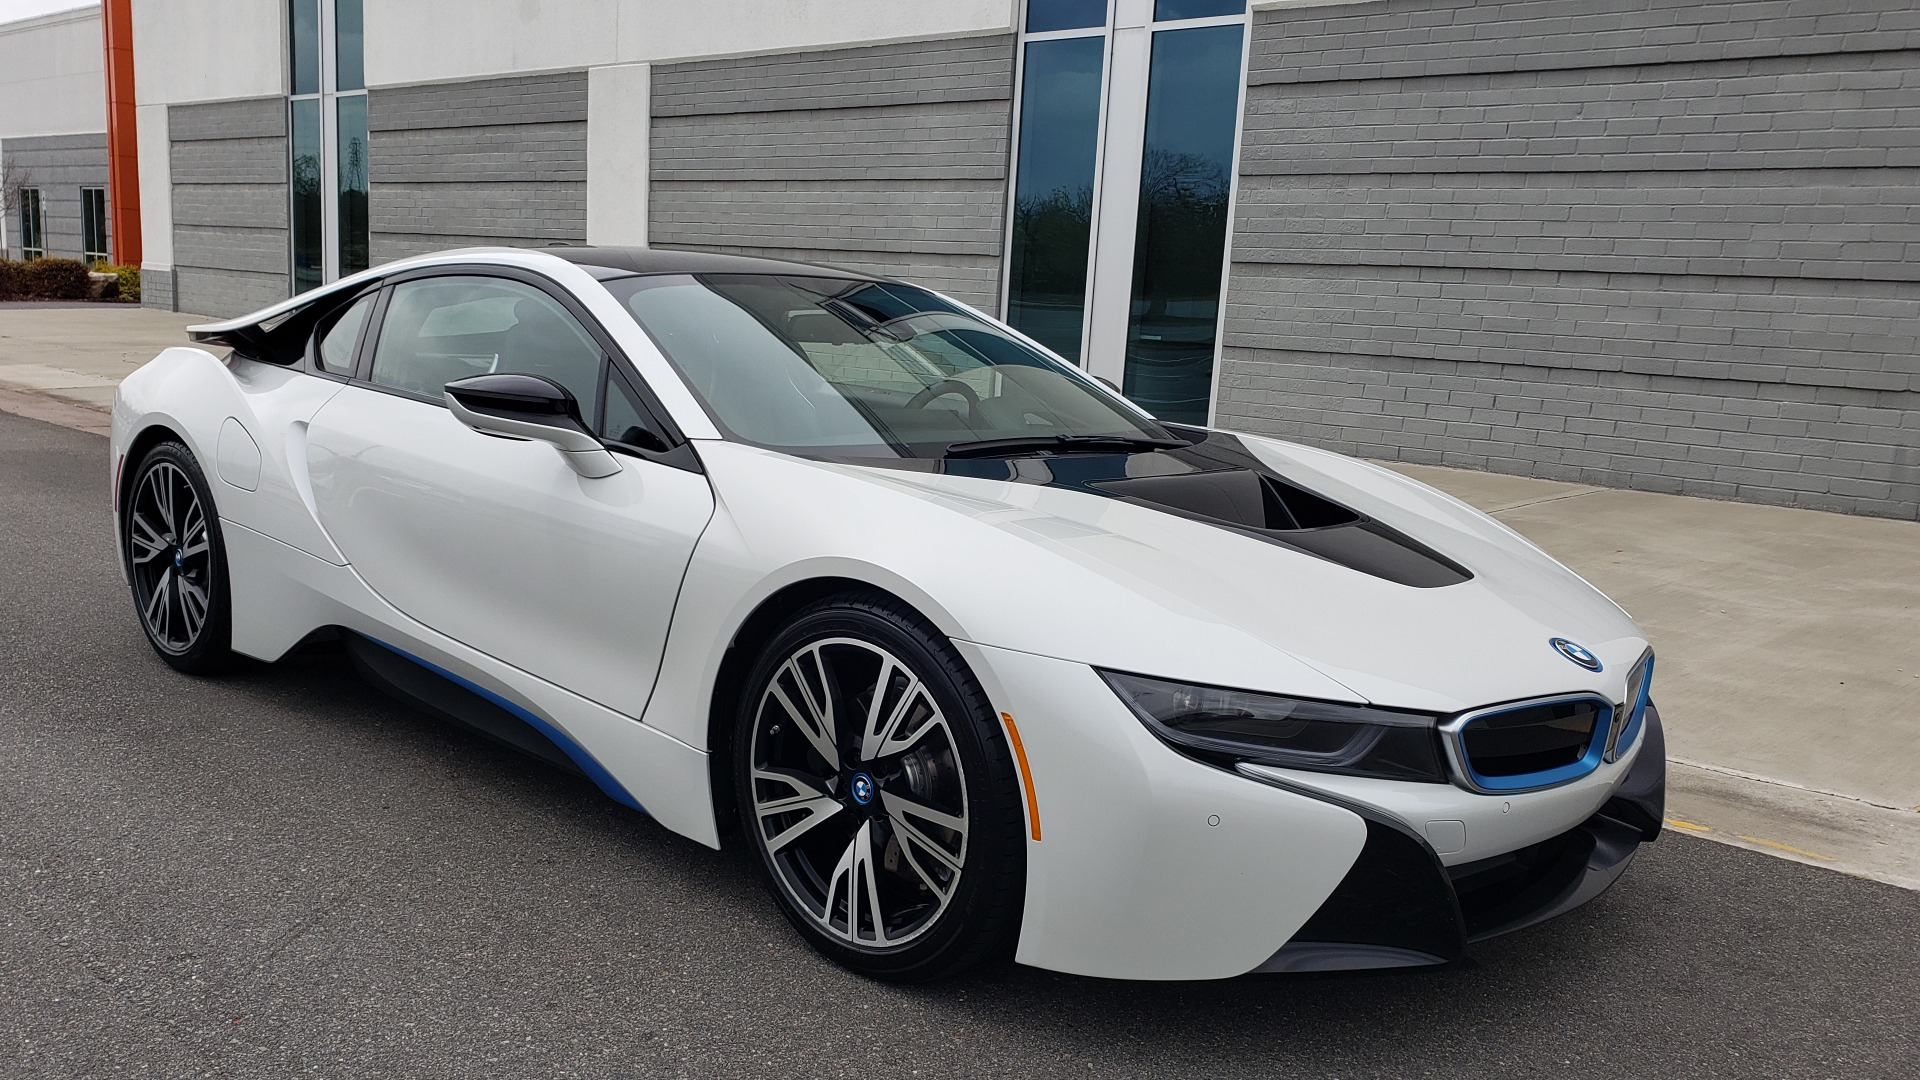 Used 2016 BMW i8 COUPE / GIGA WORLD / NAV / HUD / 20IN WHEELS / REARVIEW for sale Sold at Formula Imports in Charlotte NC 28227 4